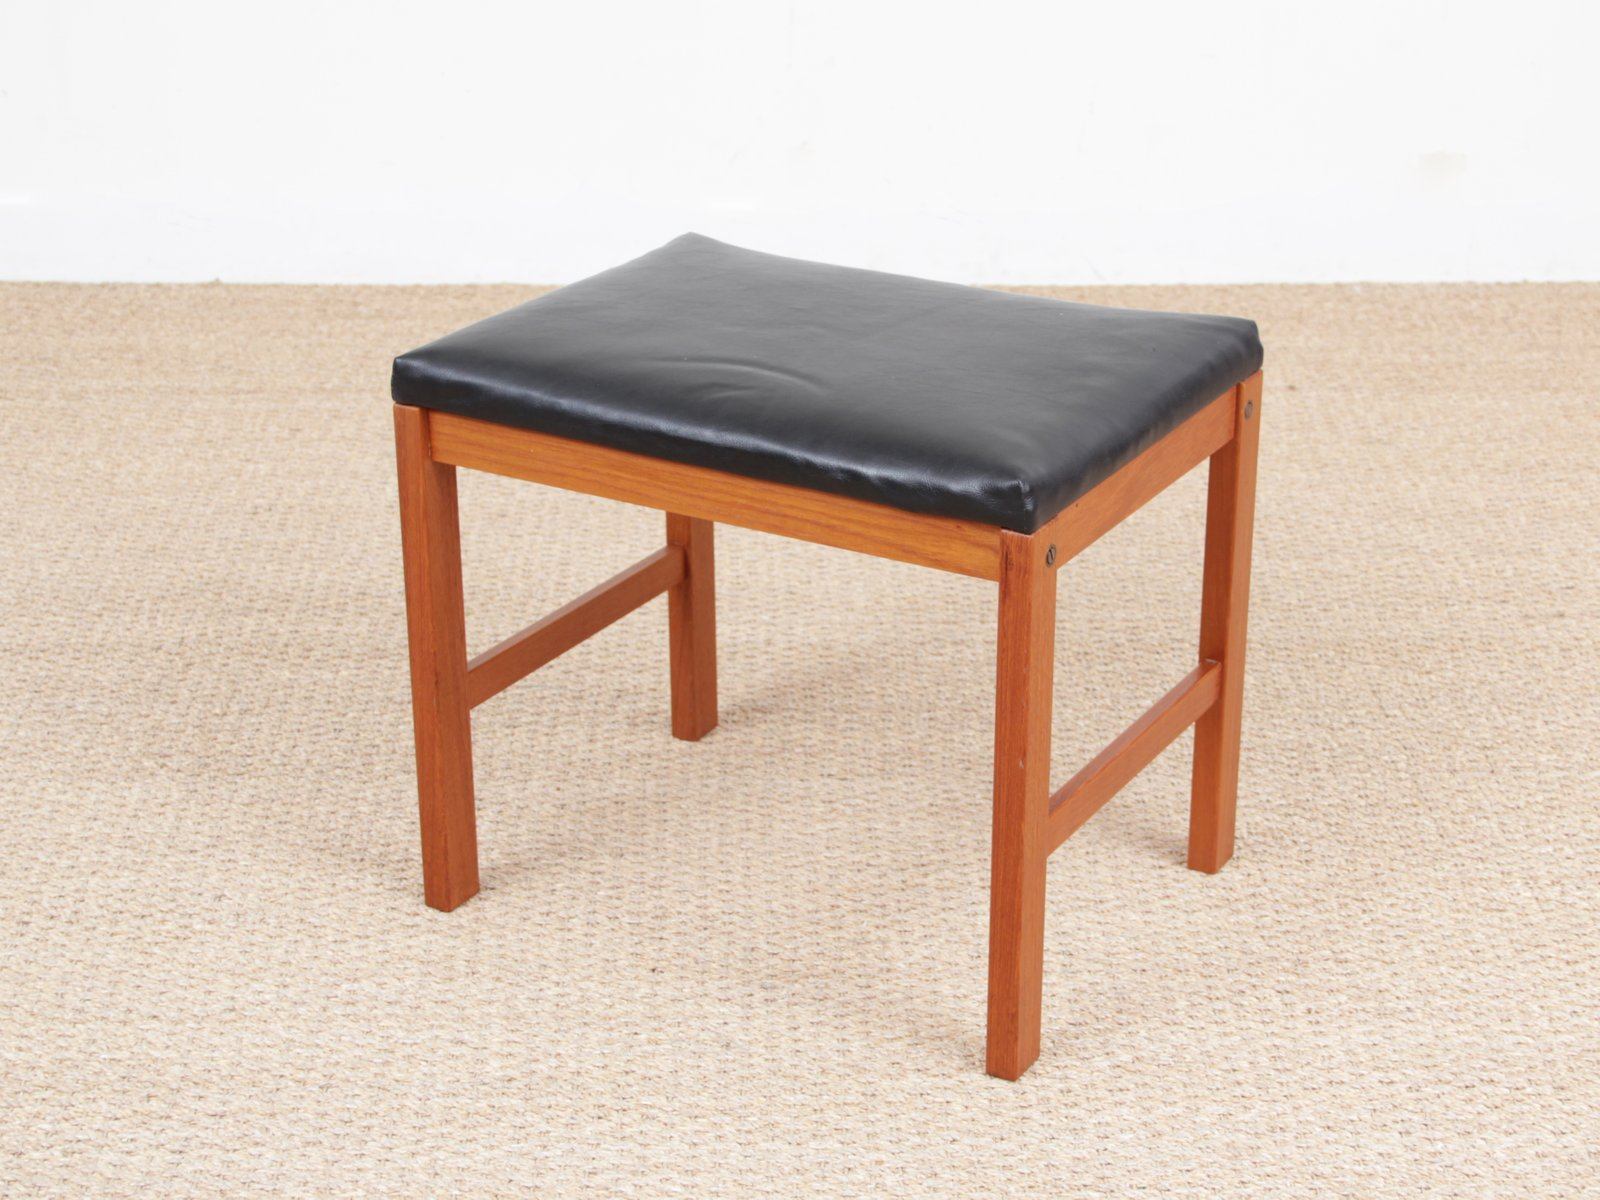 Scandinavian Furniture Sale Mid Century Modern Scandinavian Hall Furniture In Teak